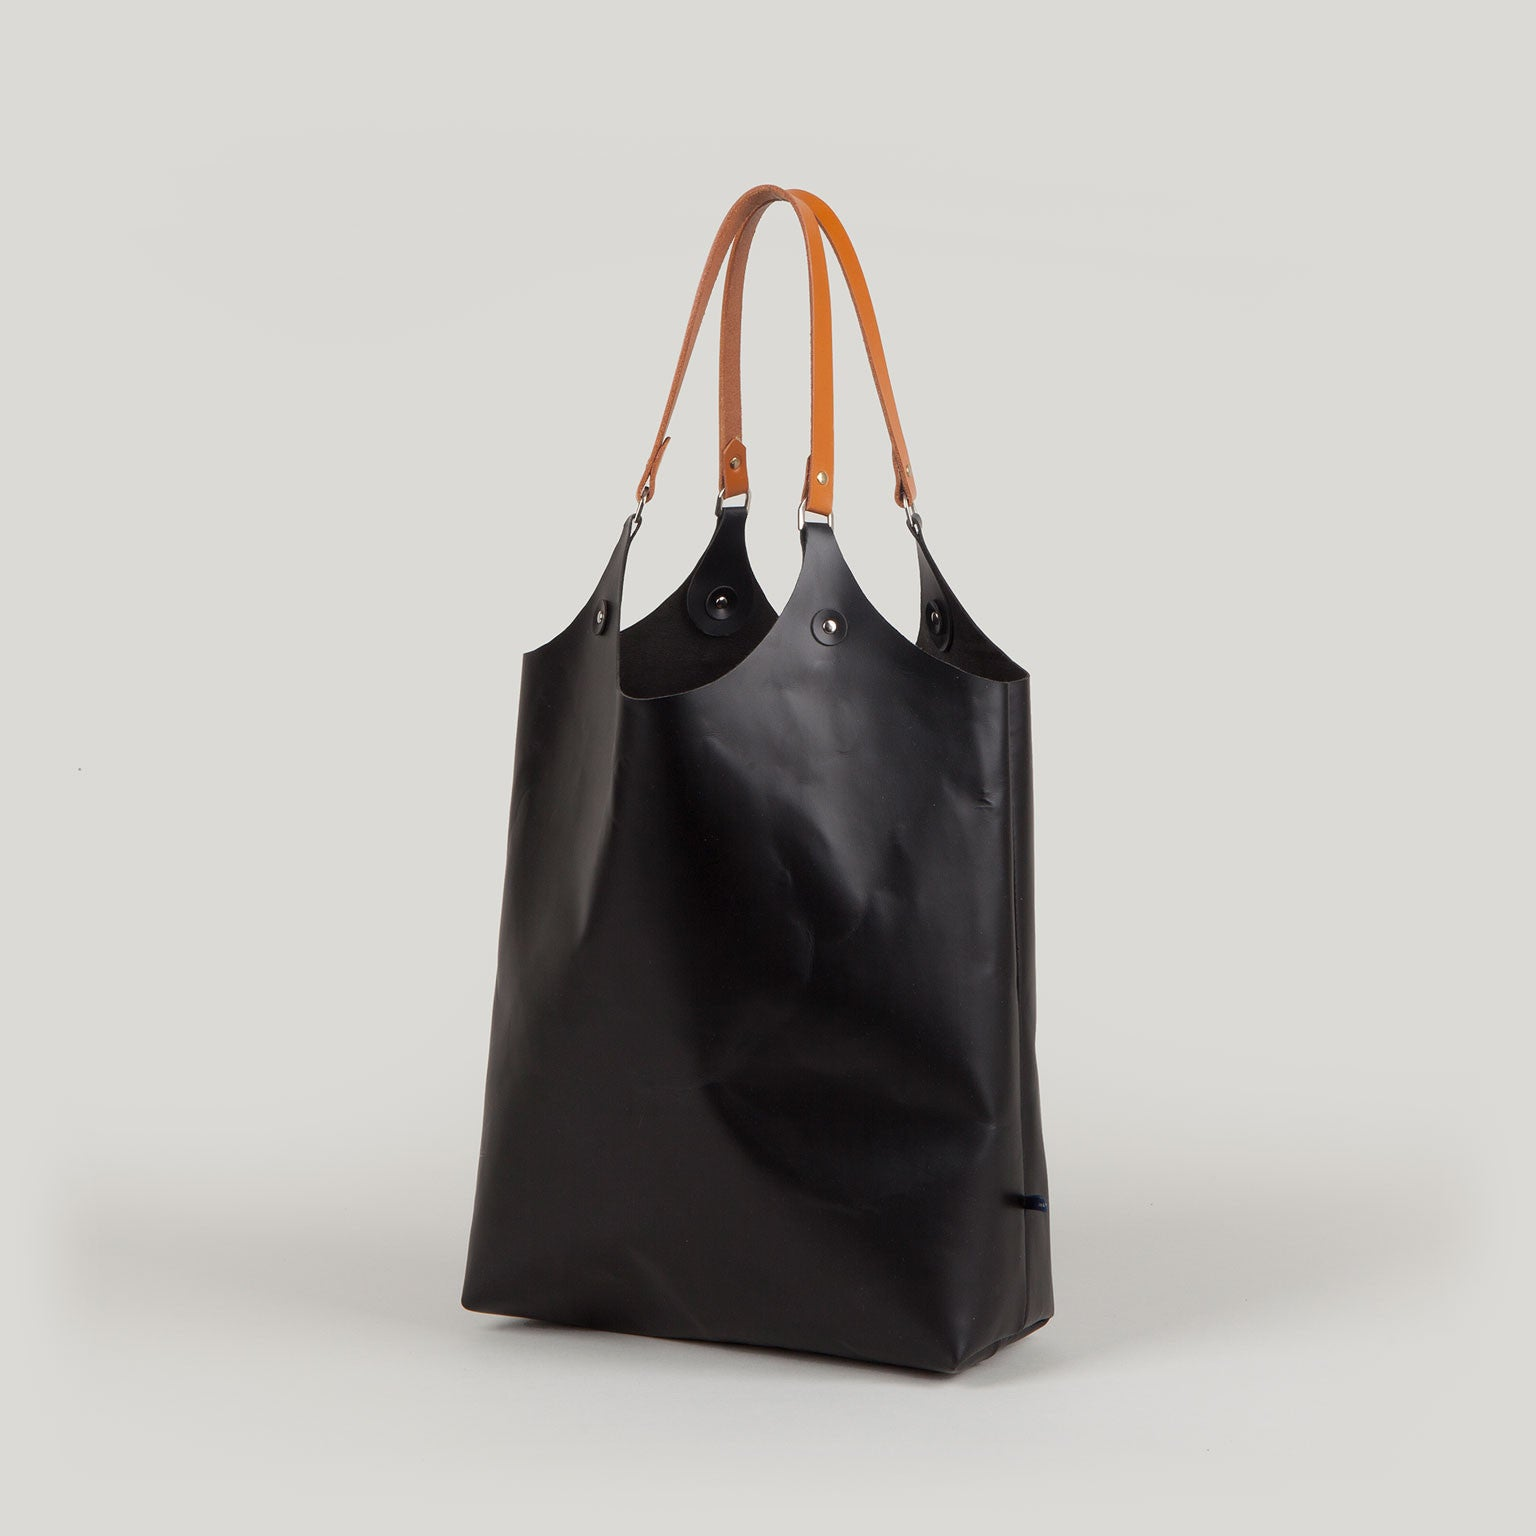 MARY Leather Tote - black